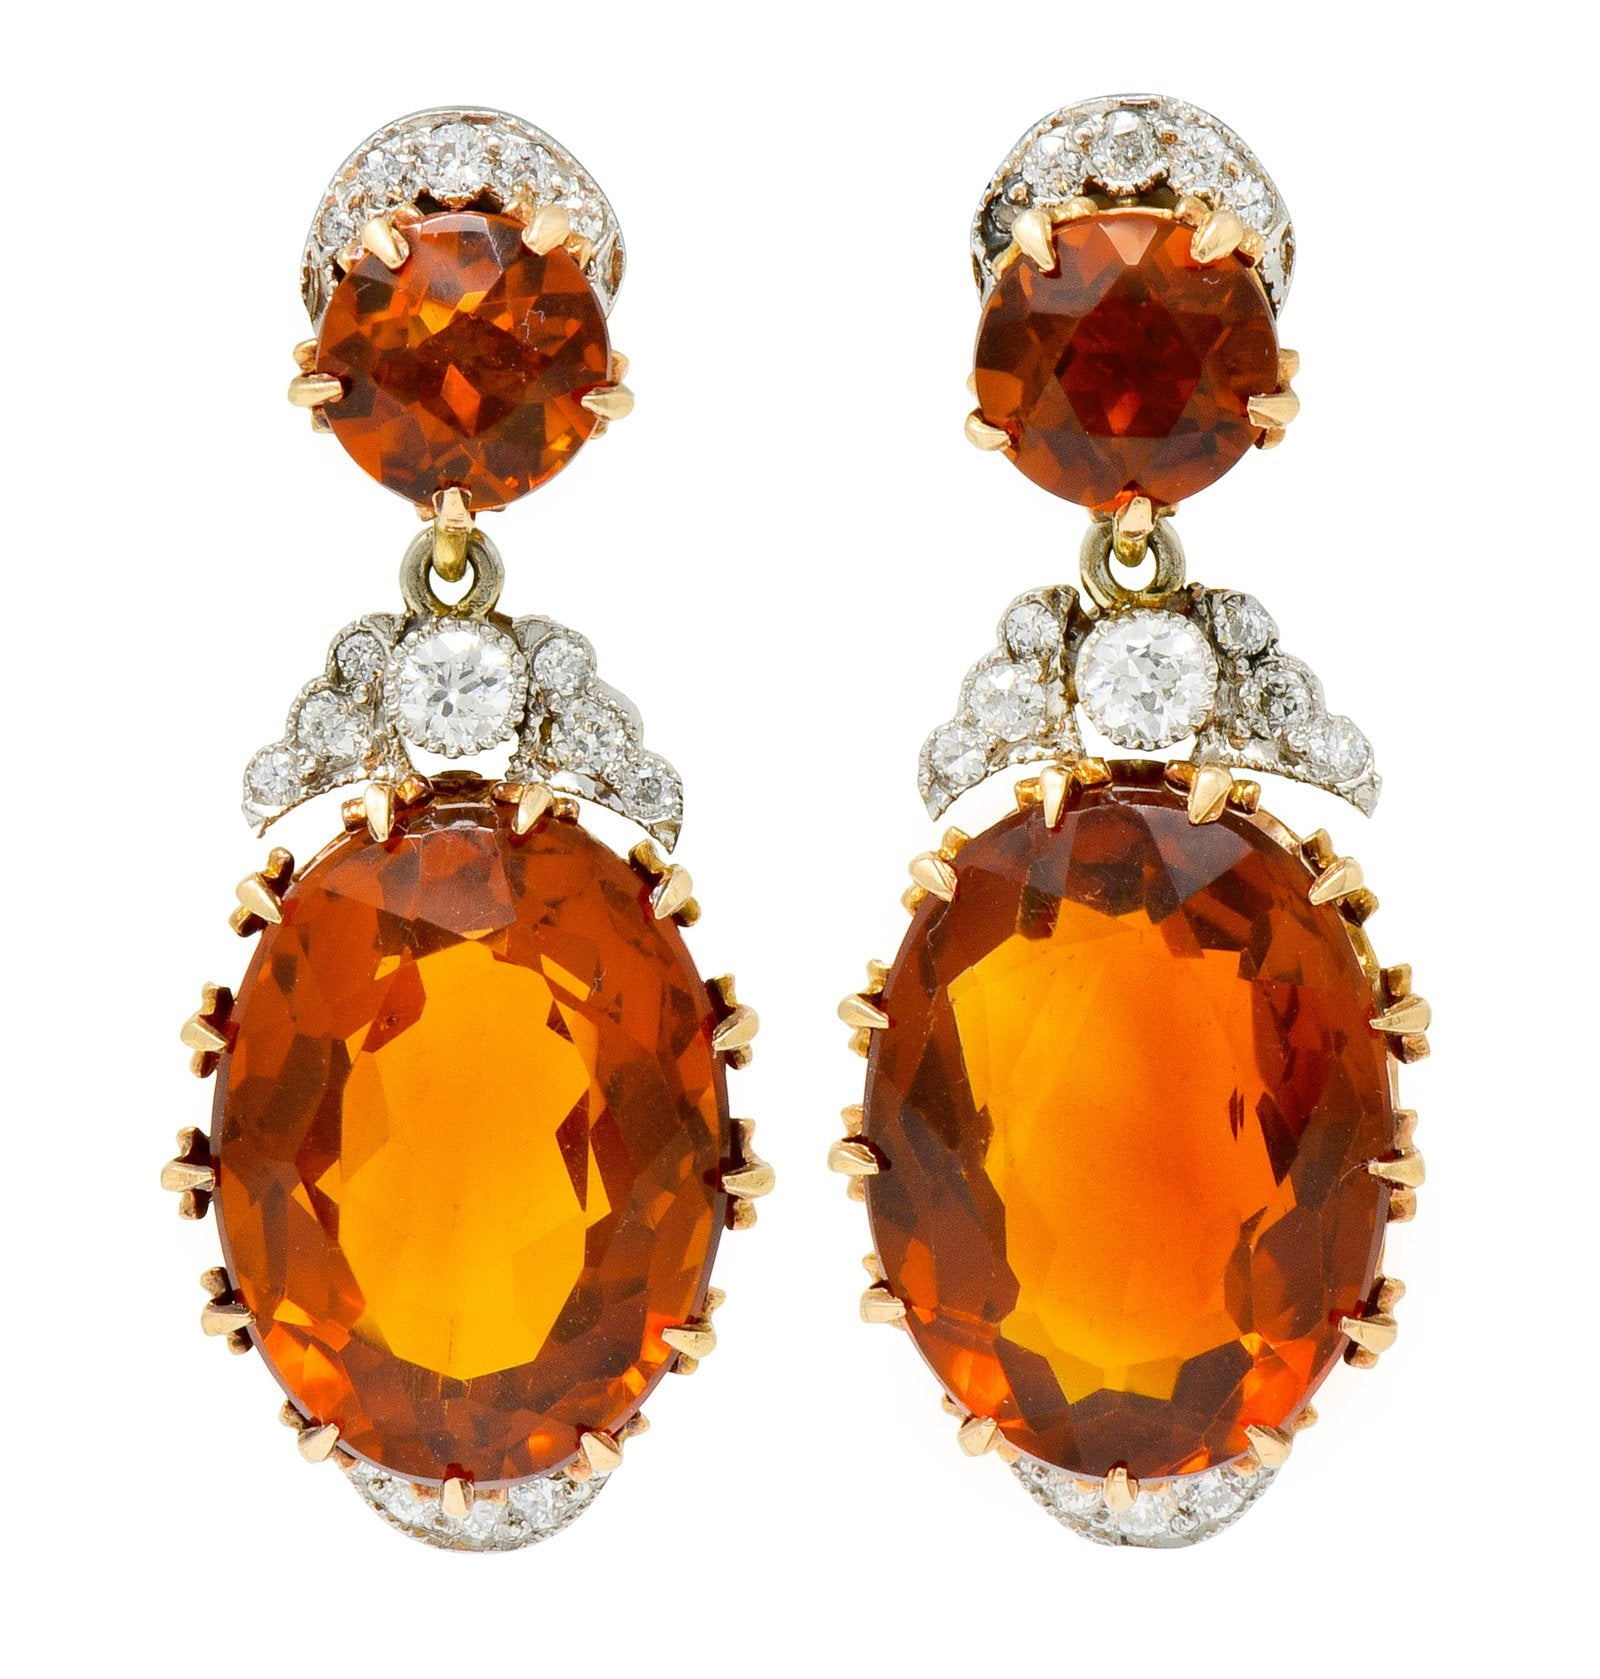 Belle Epoque Edwardian Citrine Oval Drops with Diamond accents